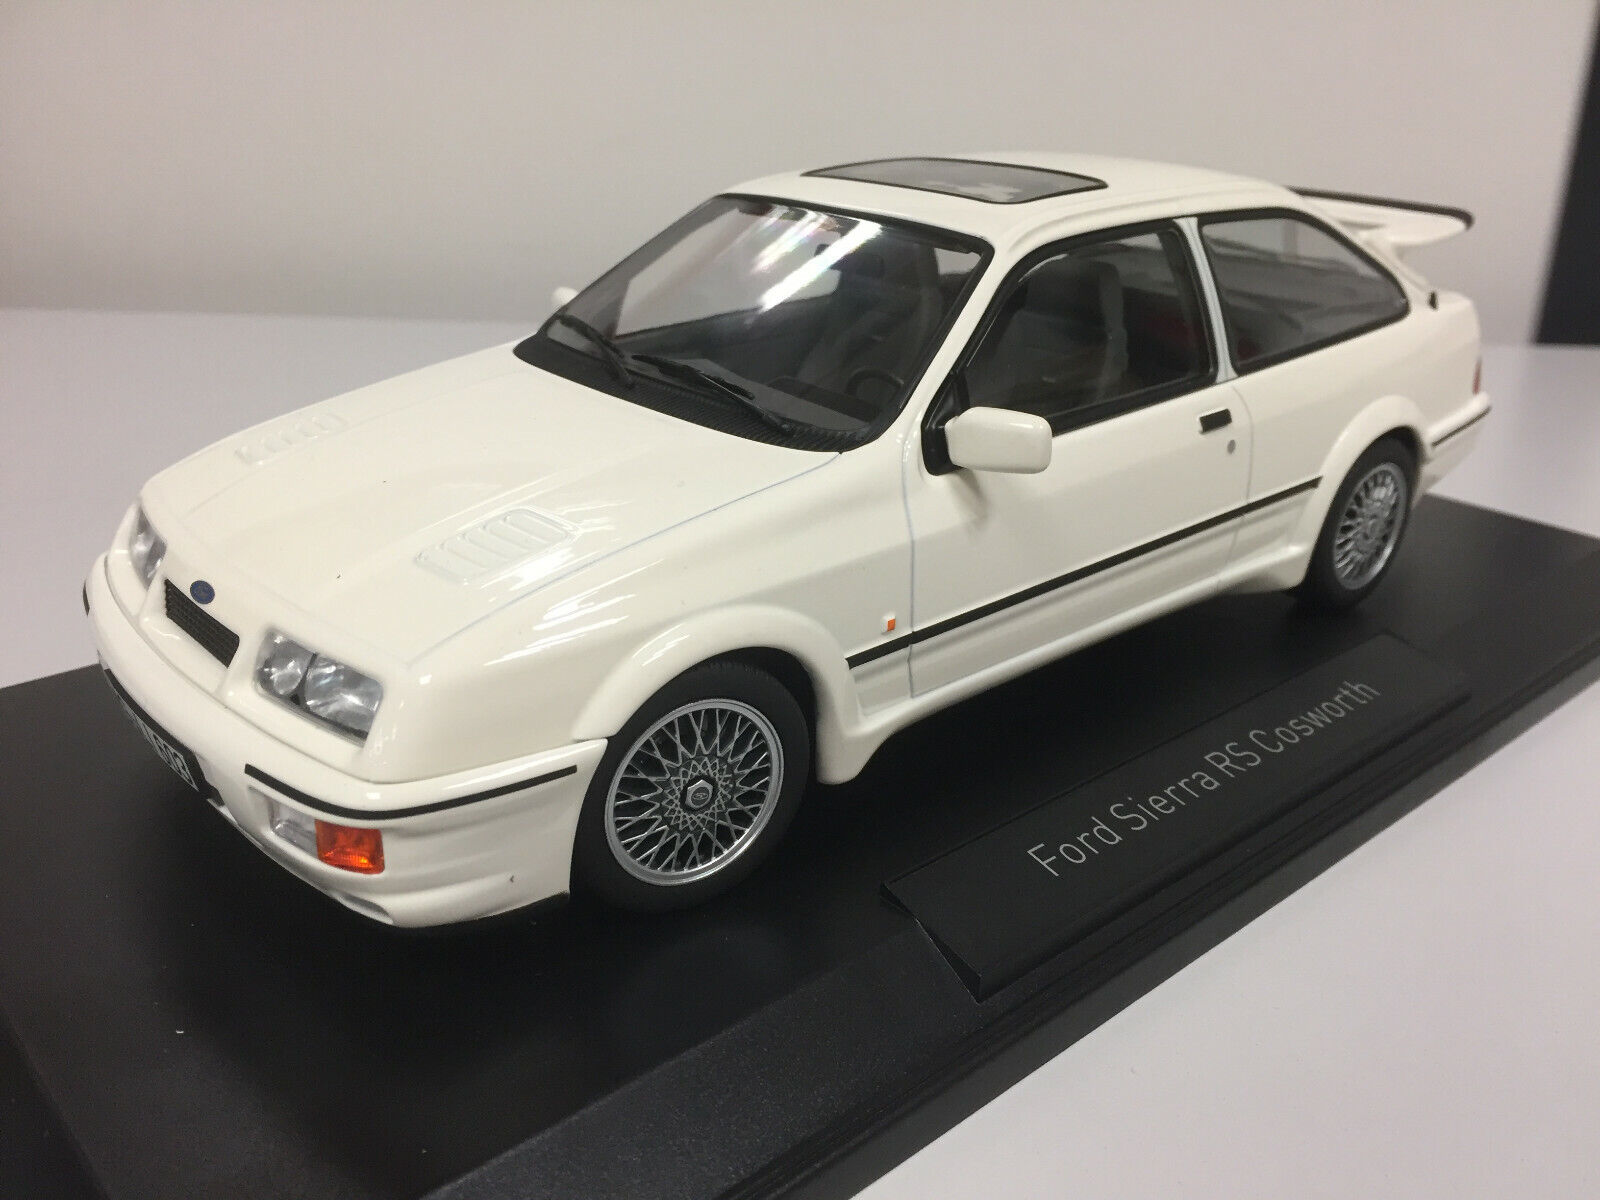 Norev ford sierra rs cosworth blanc 1986 1 18  182771 1 25  haute qualité authentique